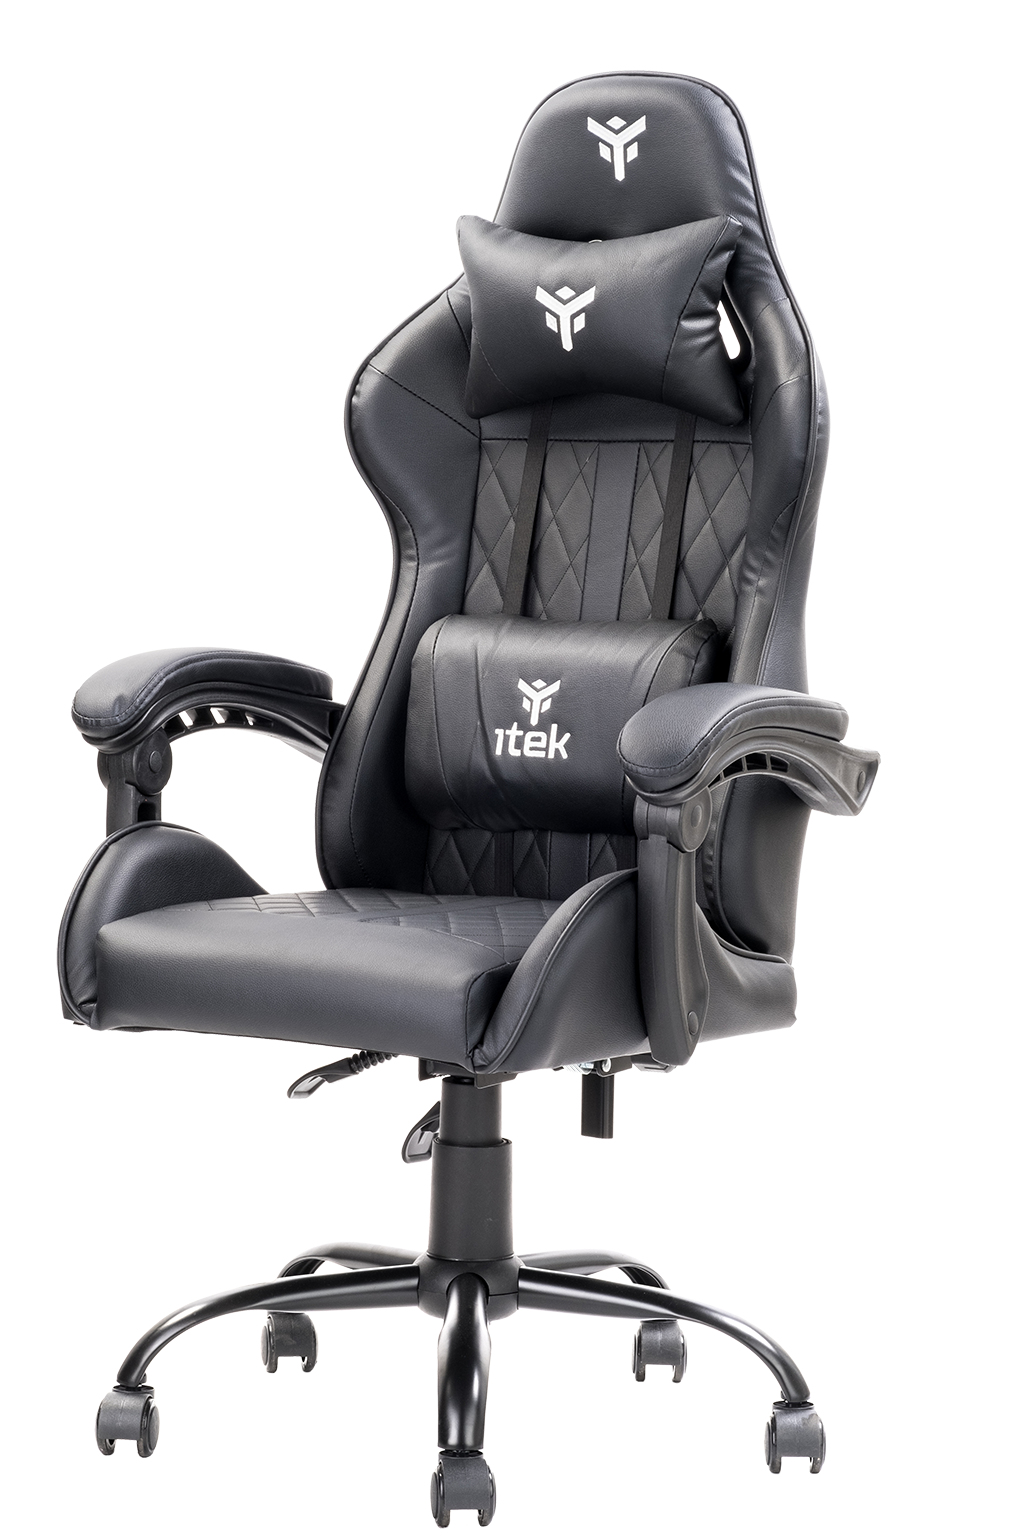 itek Gaming Chair RHOMBUS PF10 - PVC, Doppio Cuscino, Schienale Reclinabile, Nero Nero